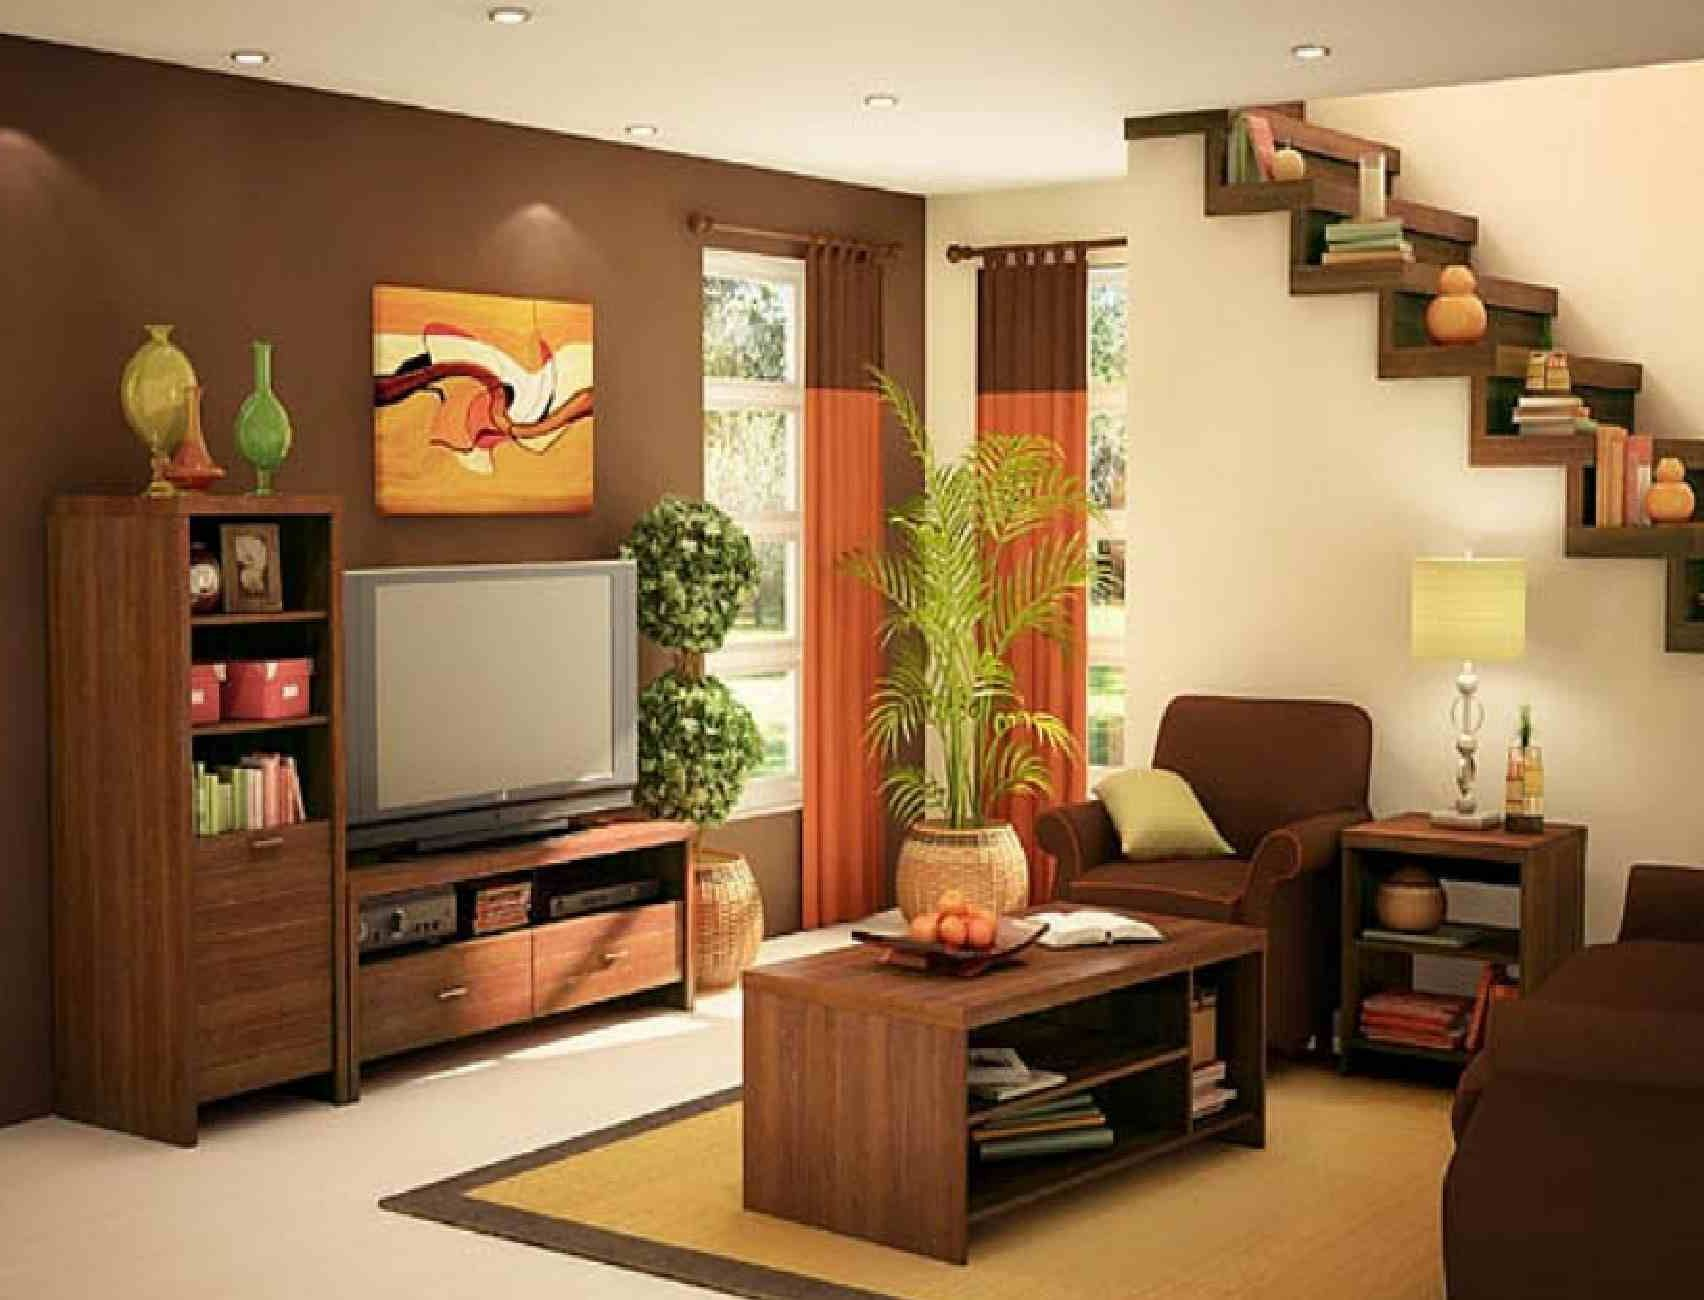 6+ Amazing Living Room Designs Indian Style, Interior and